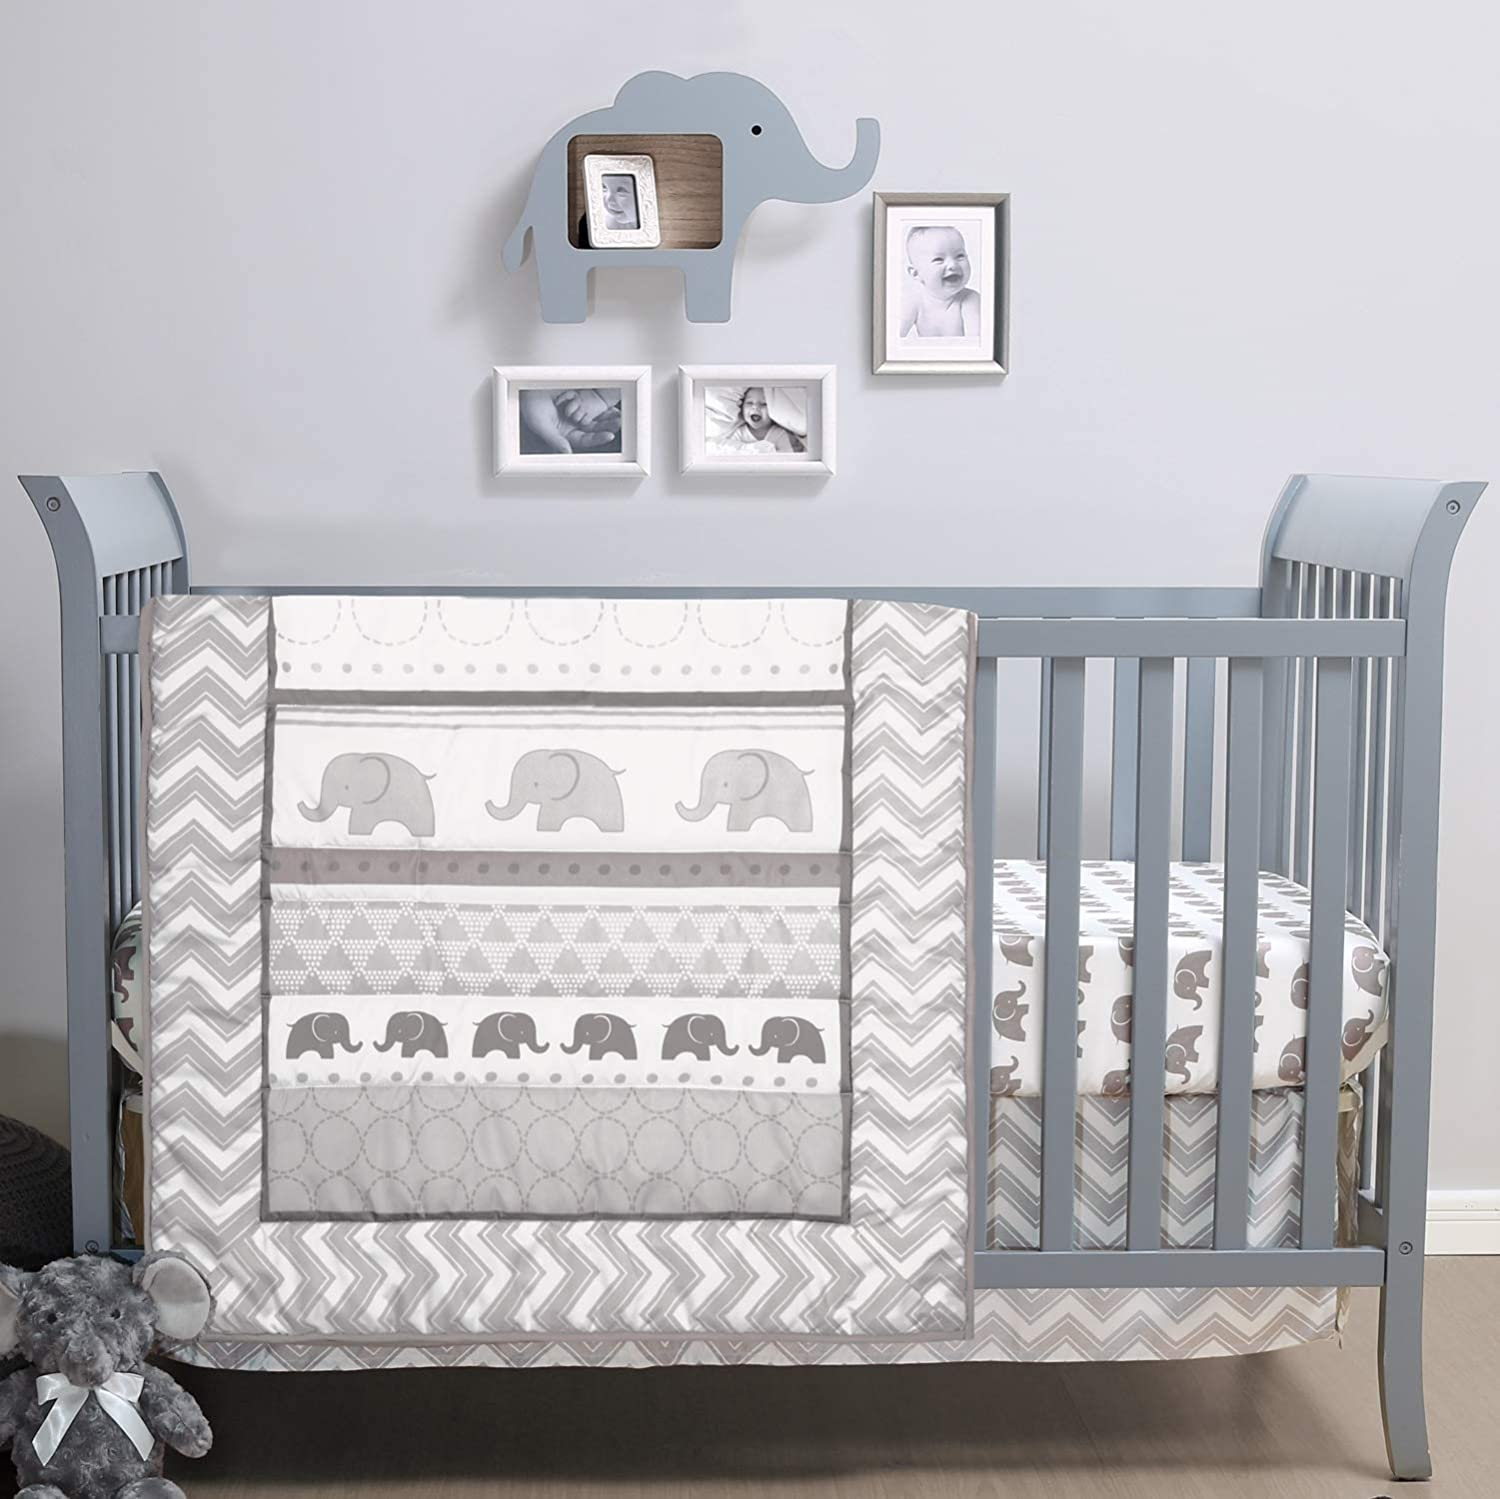 The Peanutshell Elephant Walk Crib Bedding Set | 3 Piece Nursery Set | Crib Quilt, Crib Sheet, Crib Skirt Included